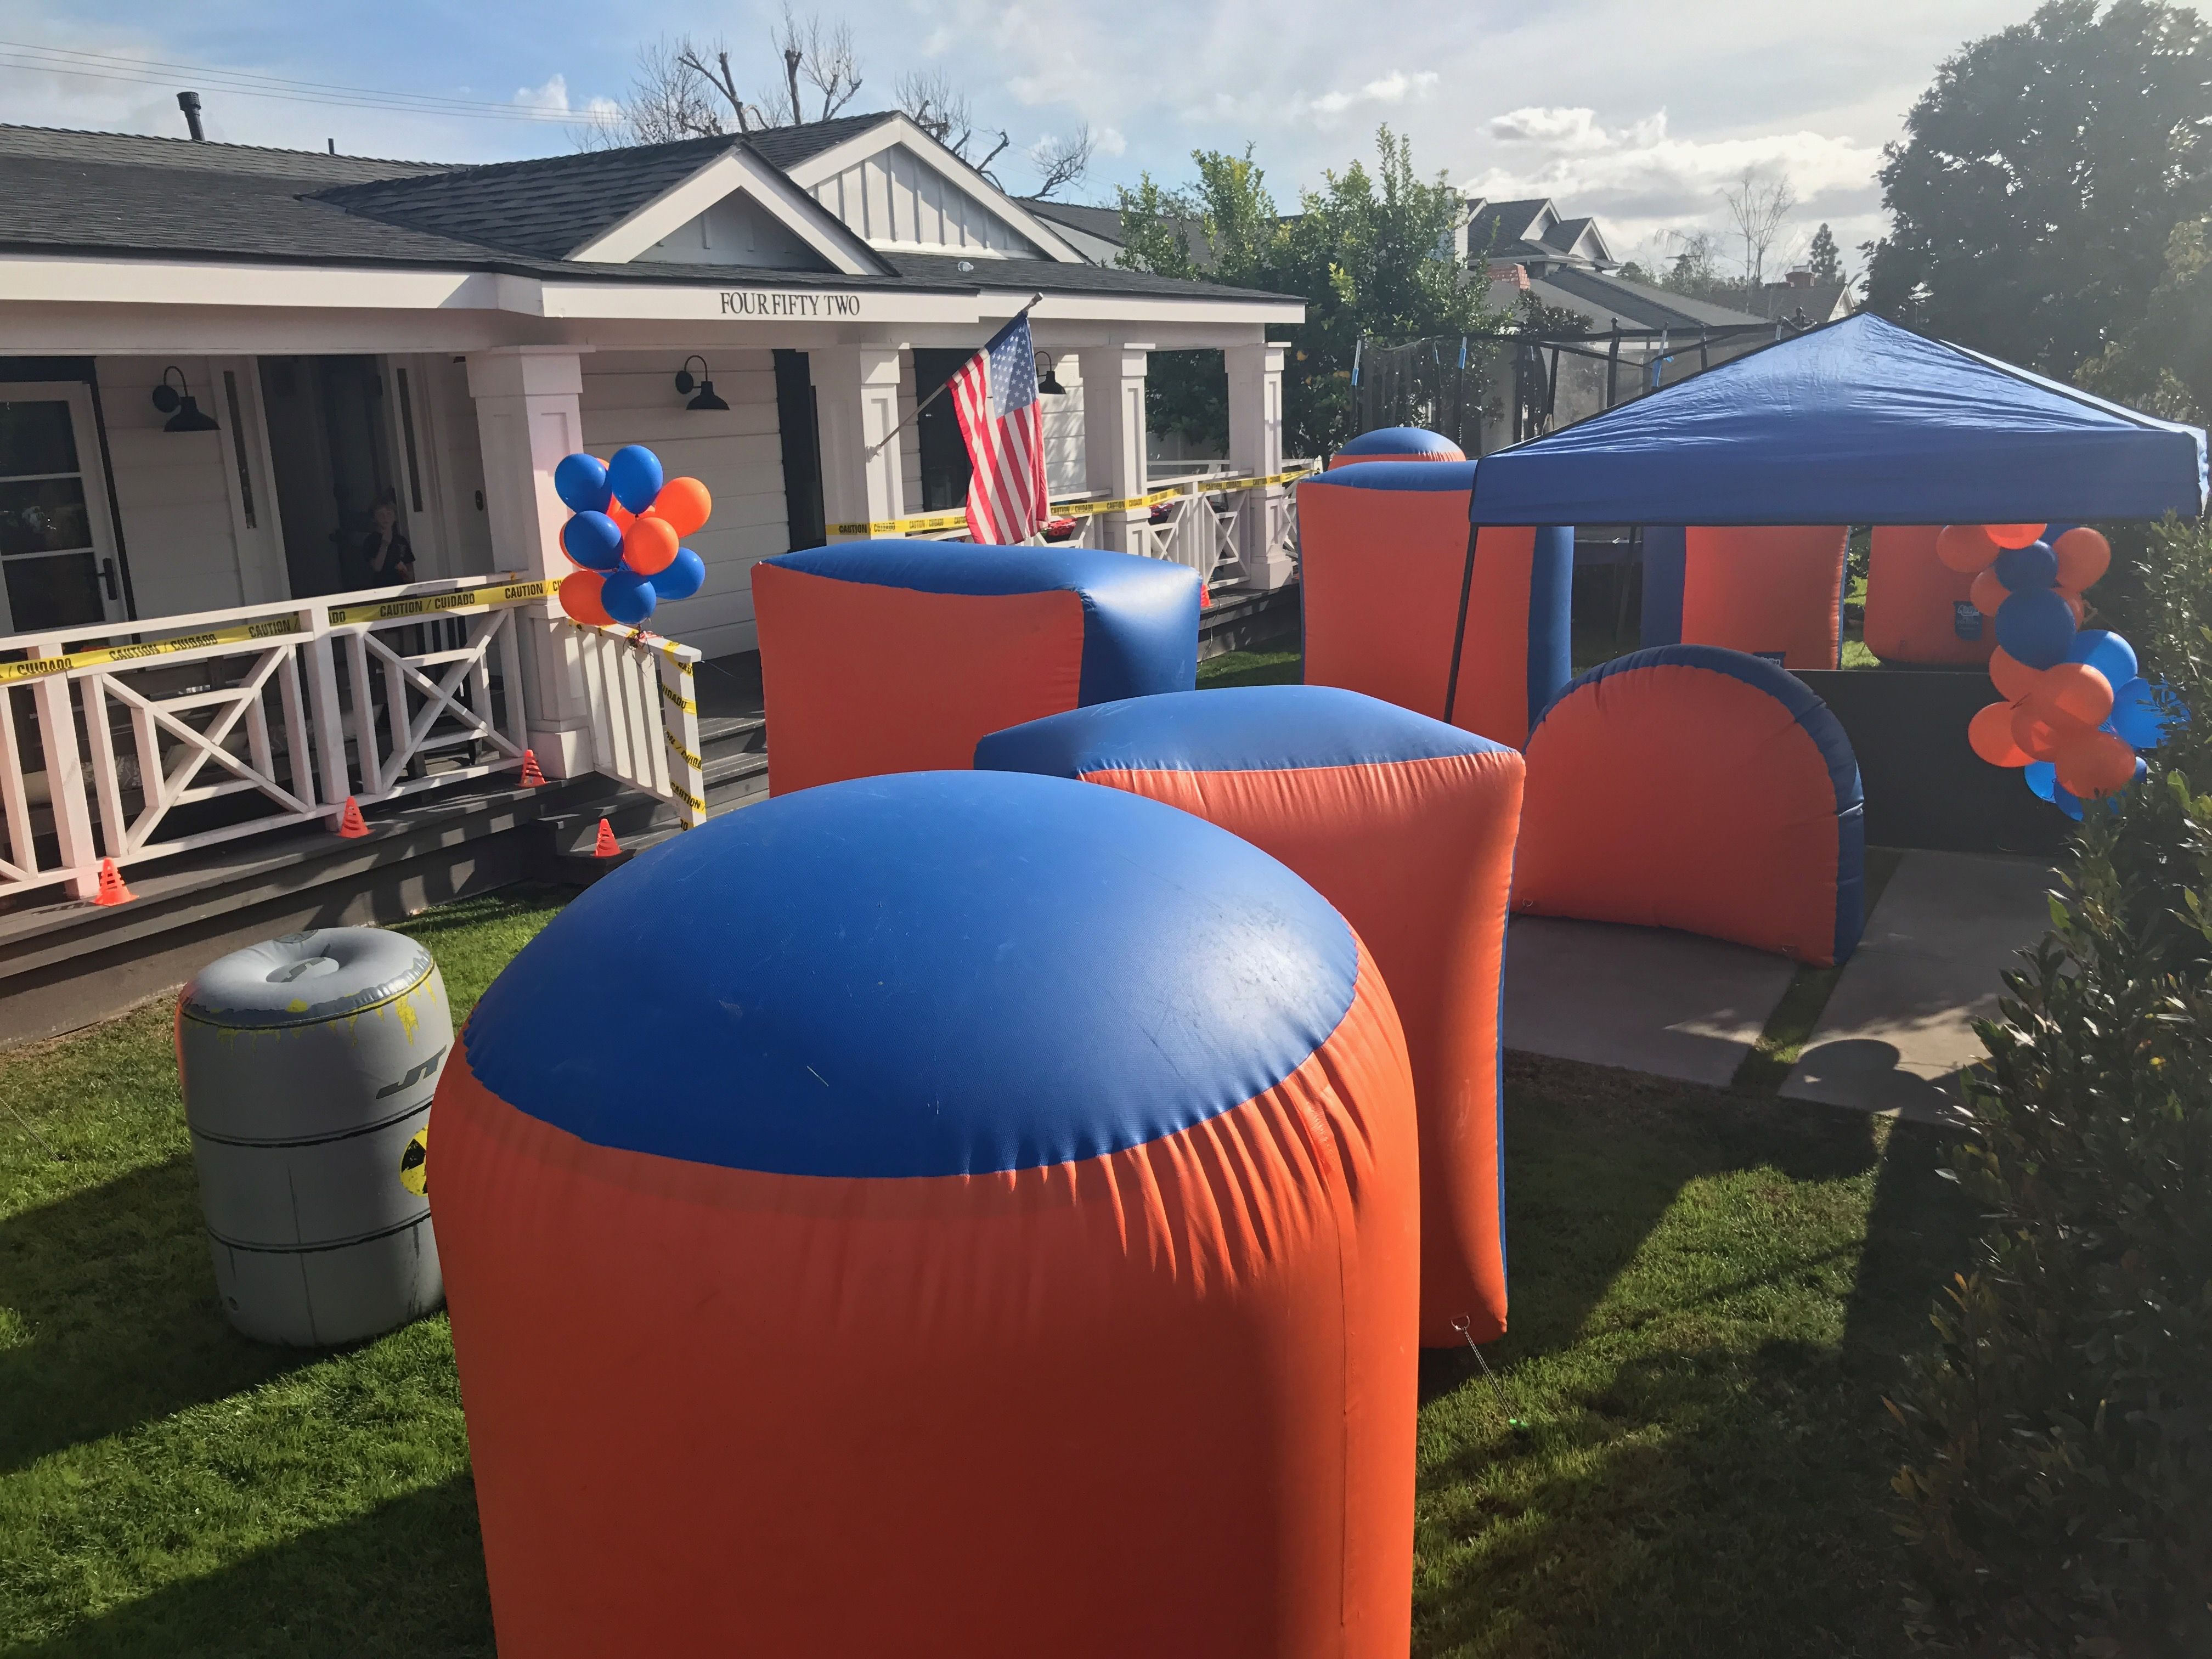 pin by renee renee on drop zone arena pinterest nerf and drop zone